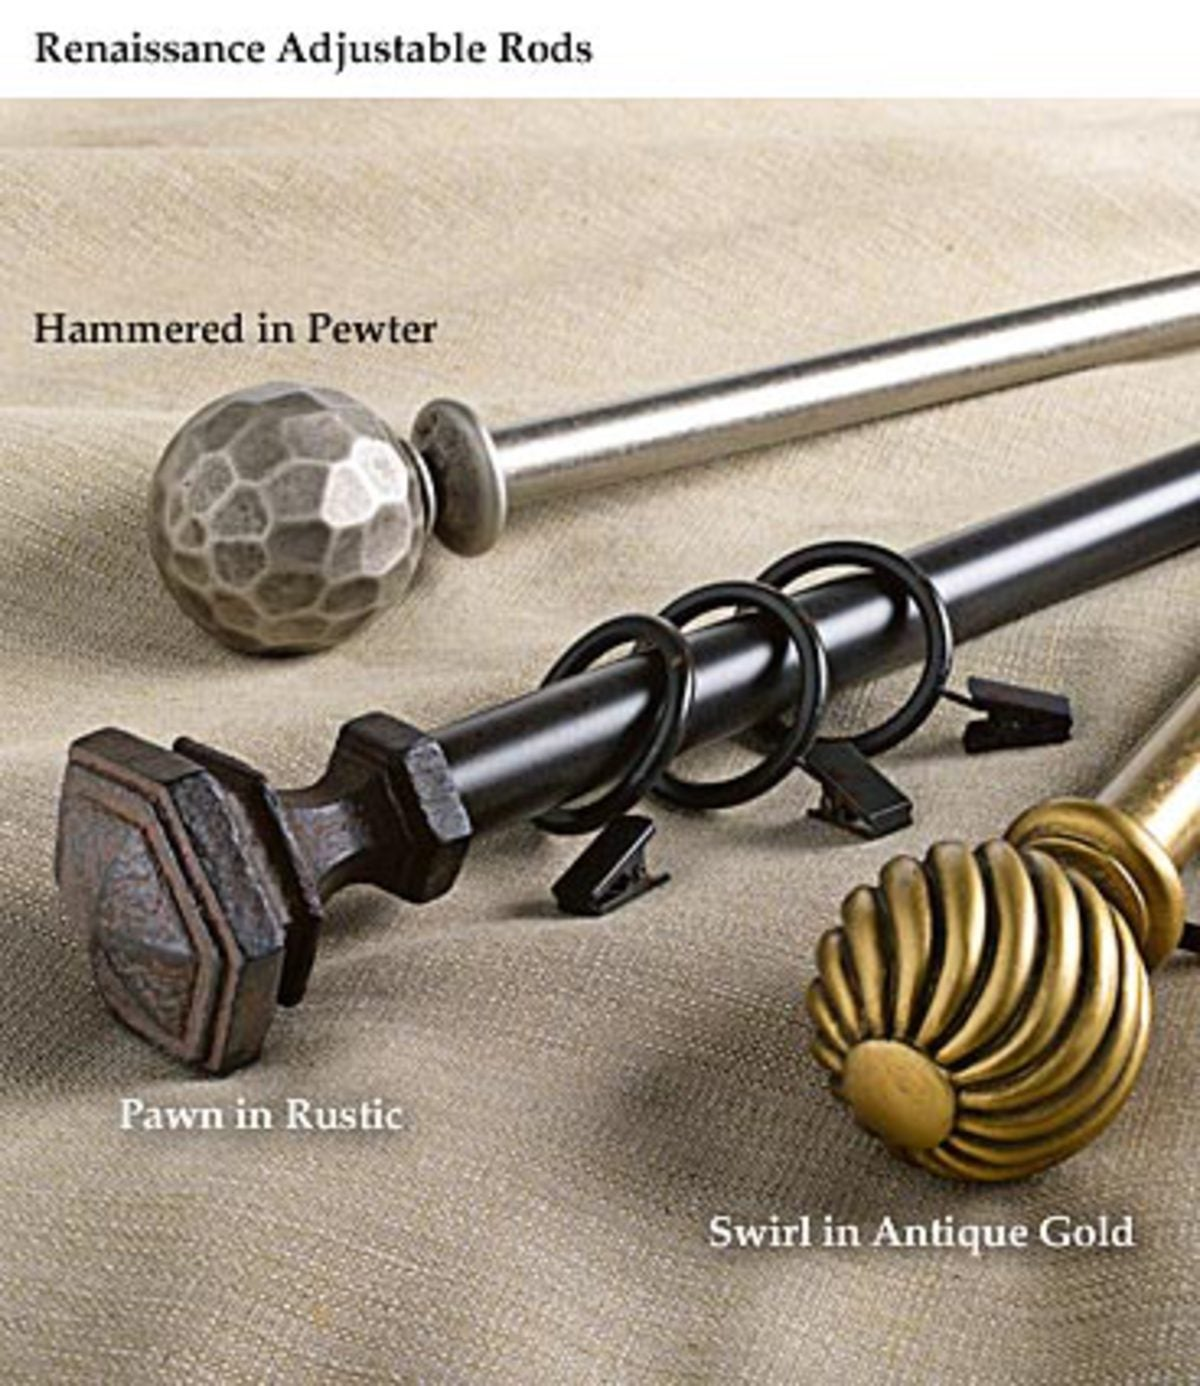 "28""- 48""Adjustable Rod and Finial Set in Gold, Pewter or Rustic Finishes - GOLD - FLUTED"